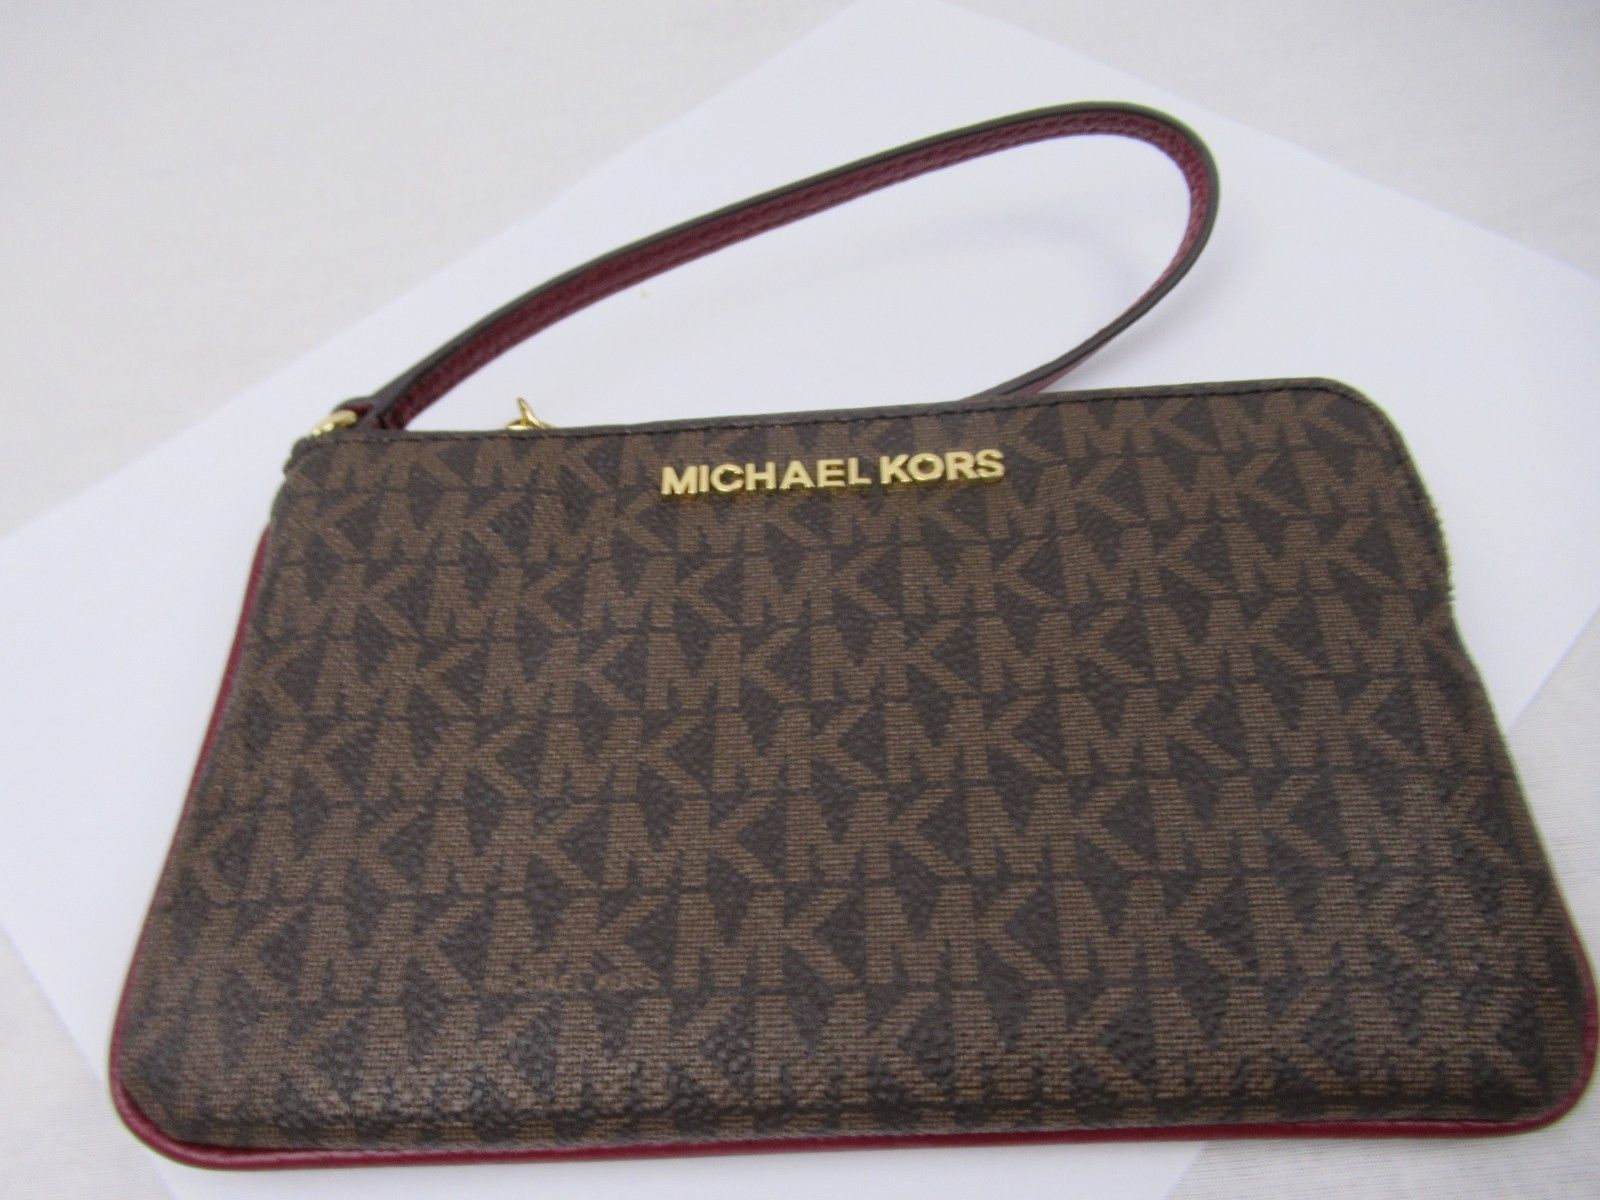 129a8239cc9d13 S l1600. S l1600. Previous. MICHAEL KORS JET SET TRAVEL LARGE TOP ZIP  SIGNATURE BROWN SIGNATURE WRISTLET NWT